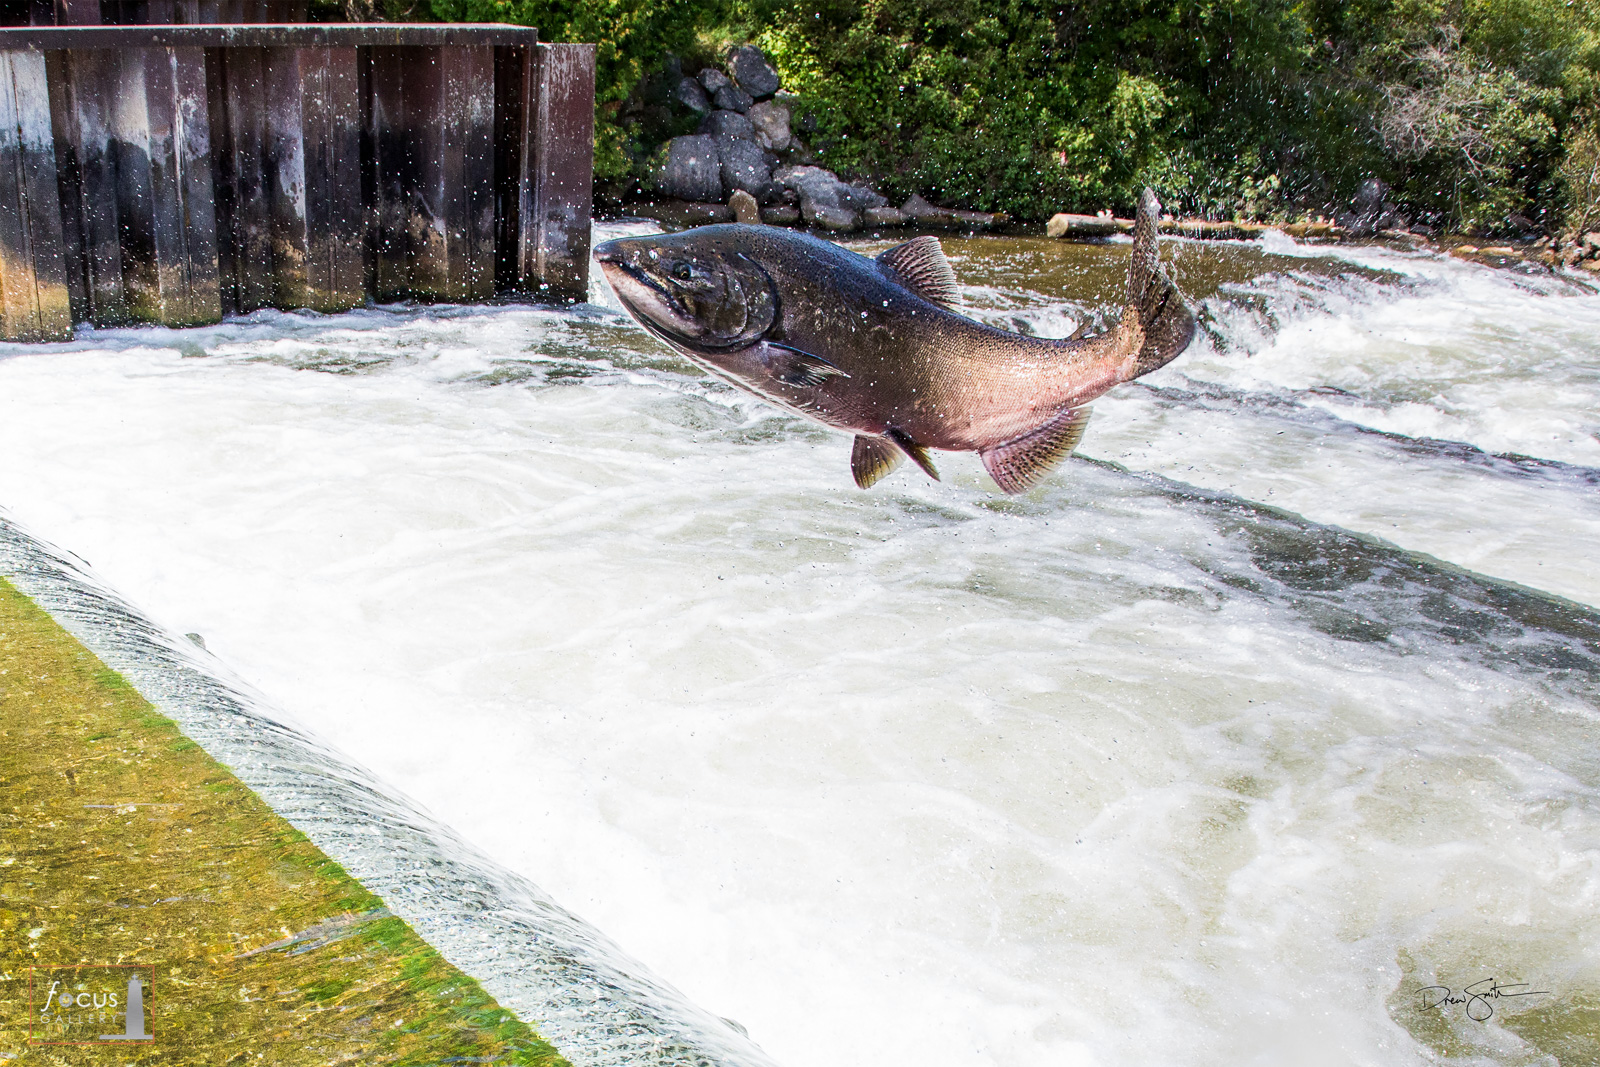 A large salmon jumps up a fish ladder at Homestead Dam on the Betsie River in Benzonia, Michigan.